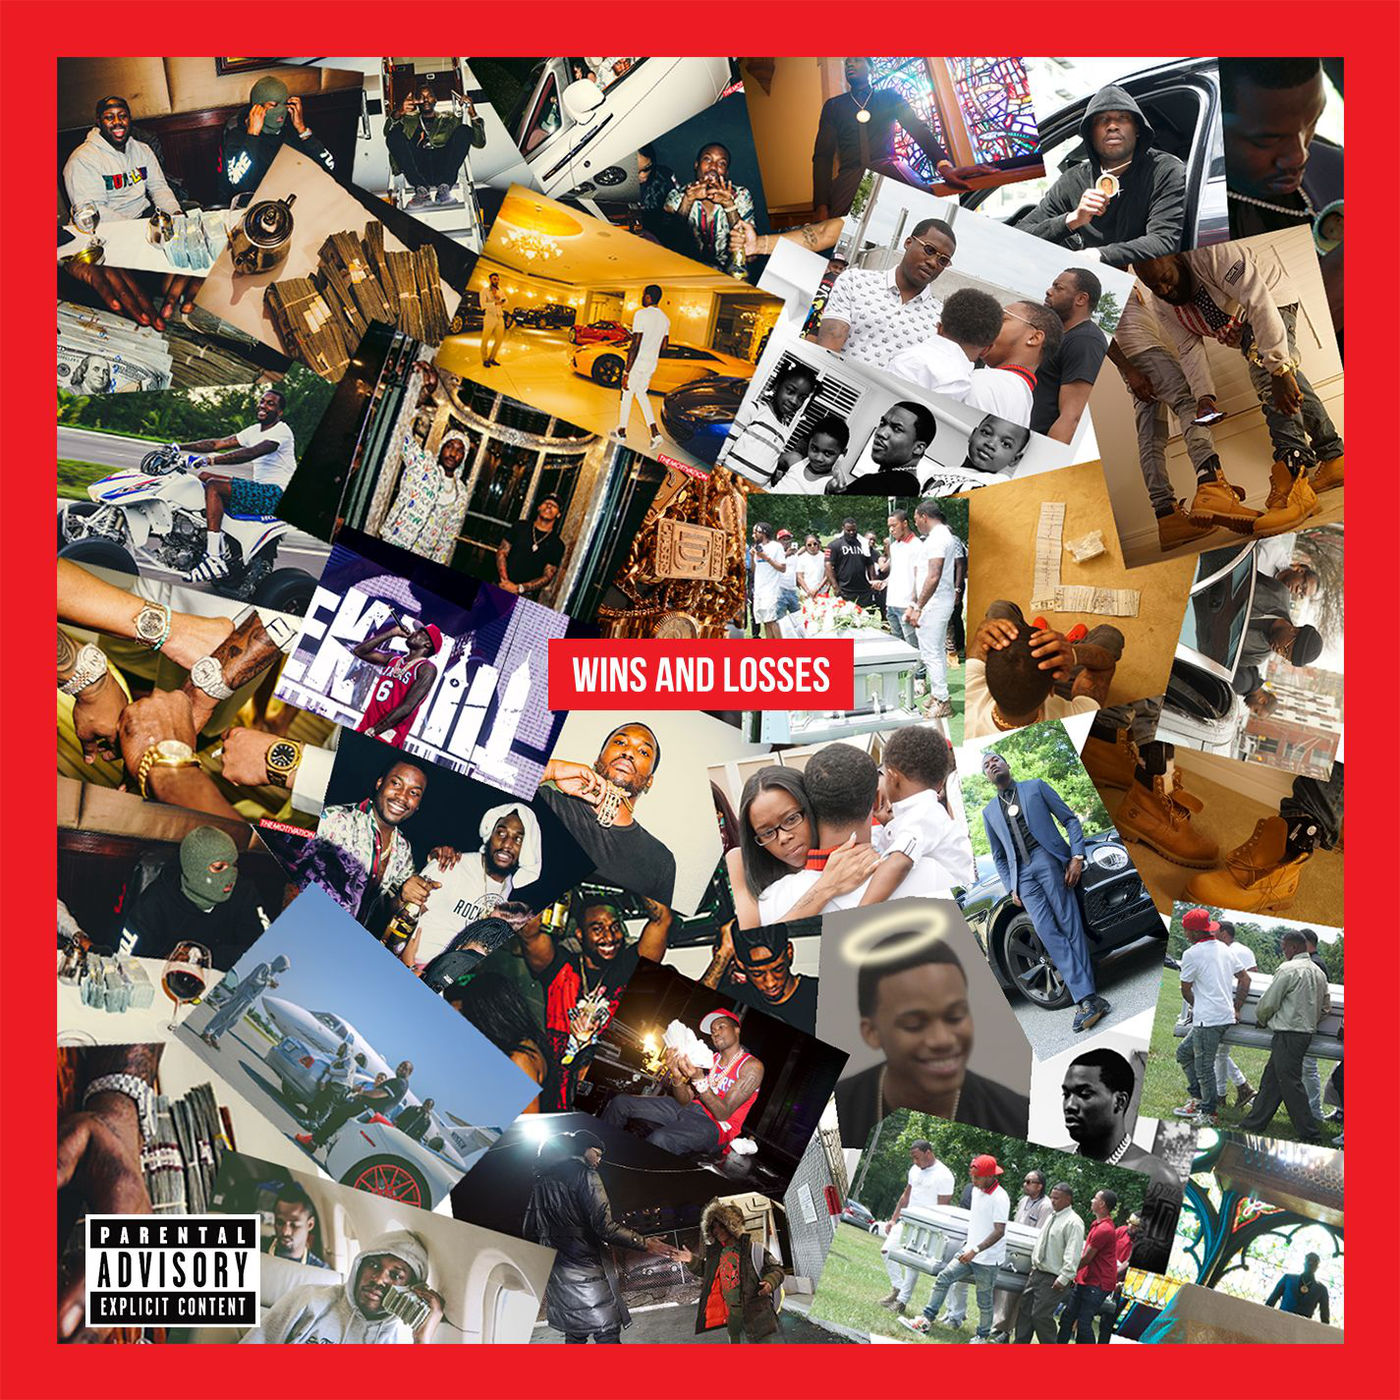 Meek Mill - Issues - Single Cover